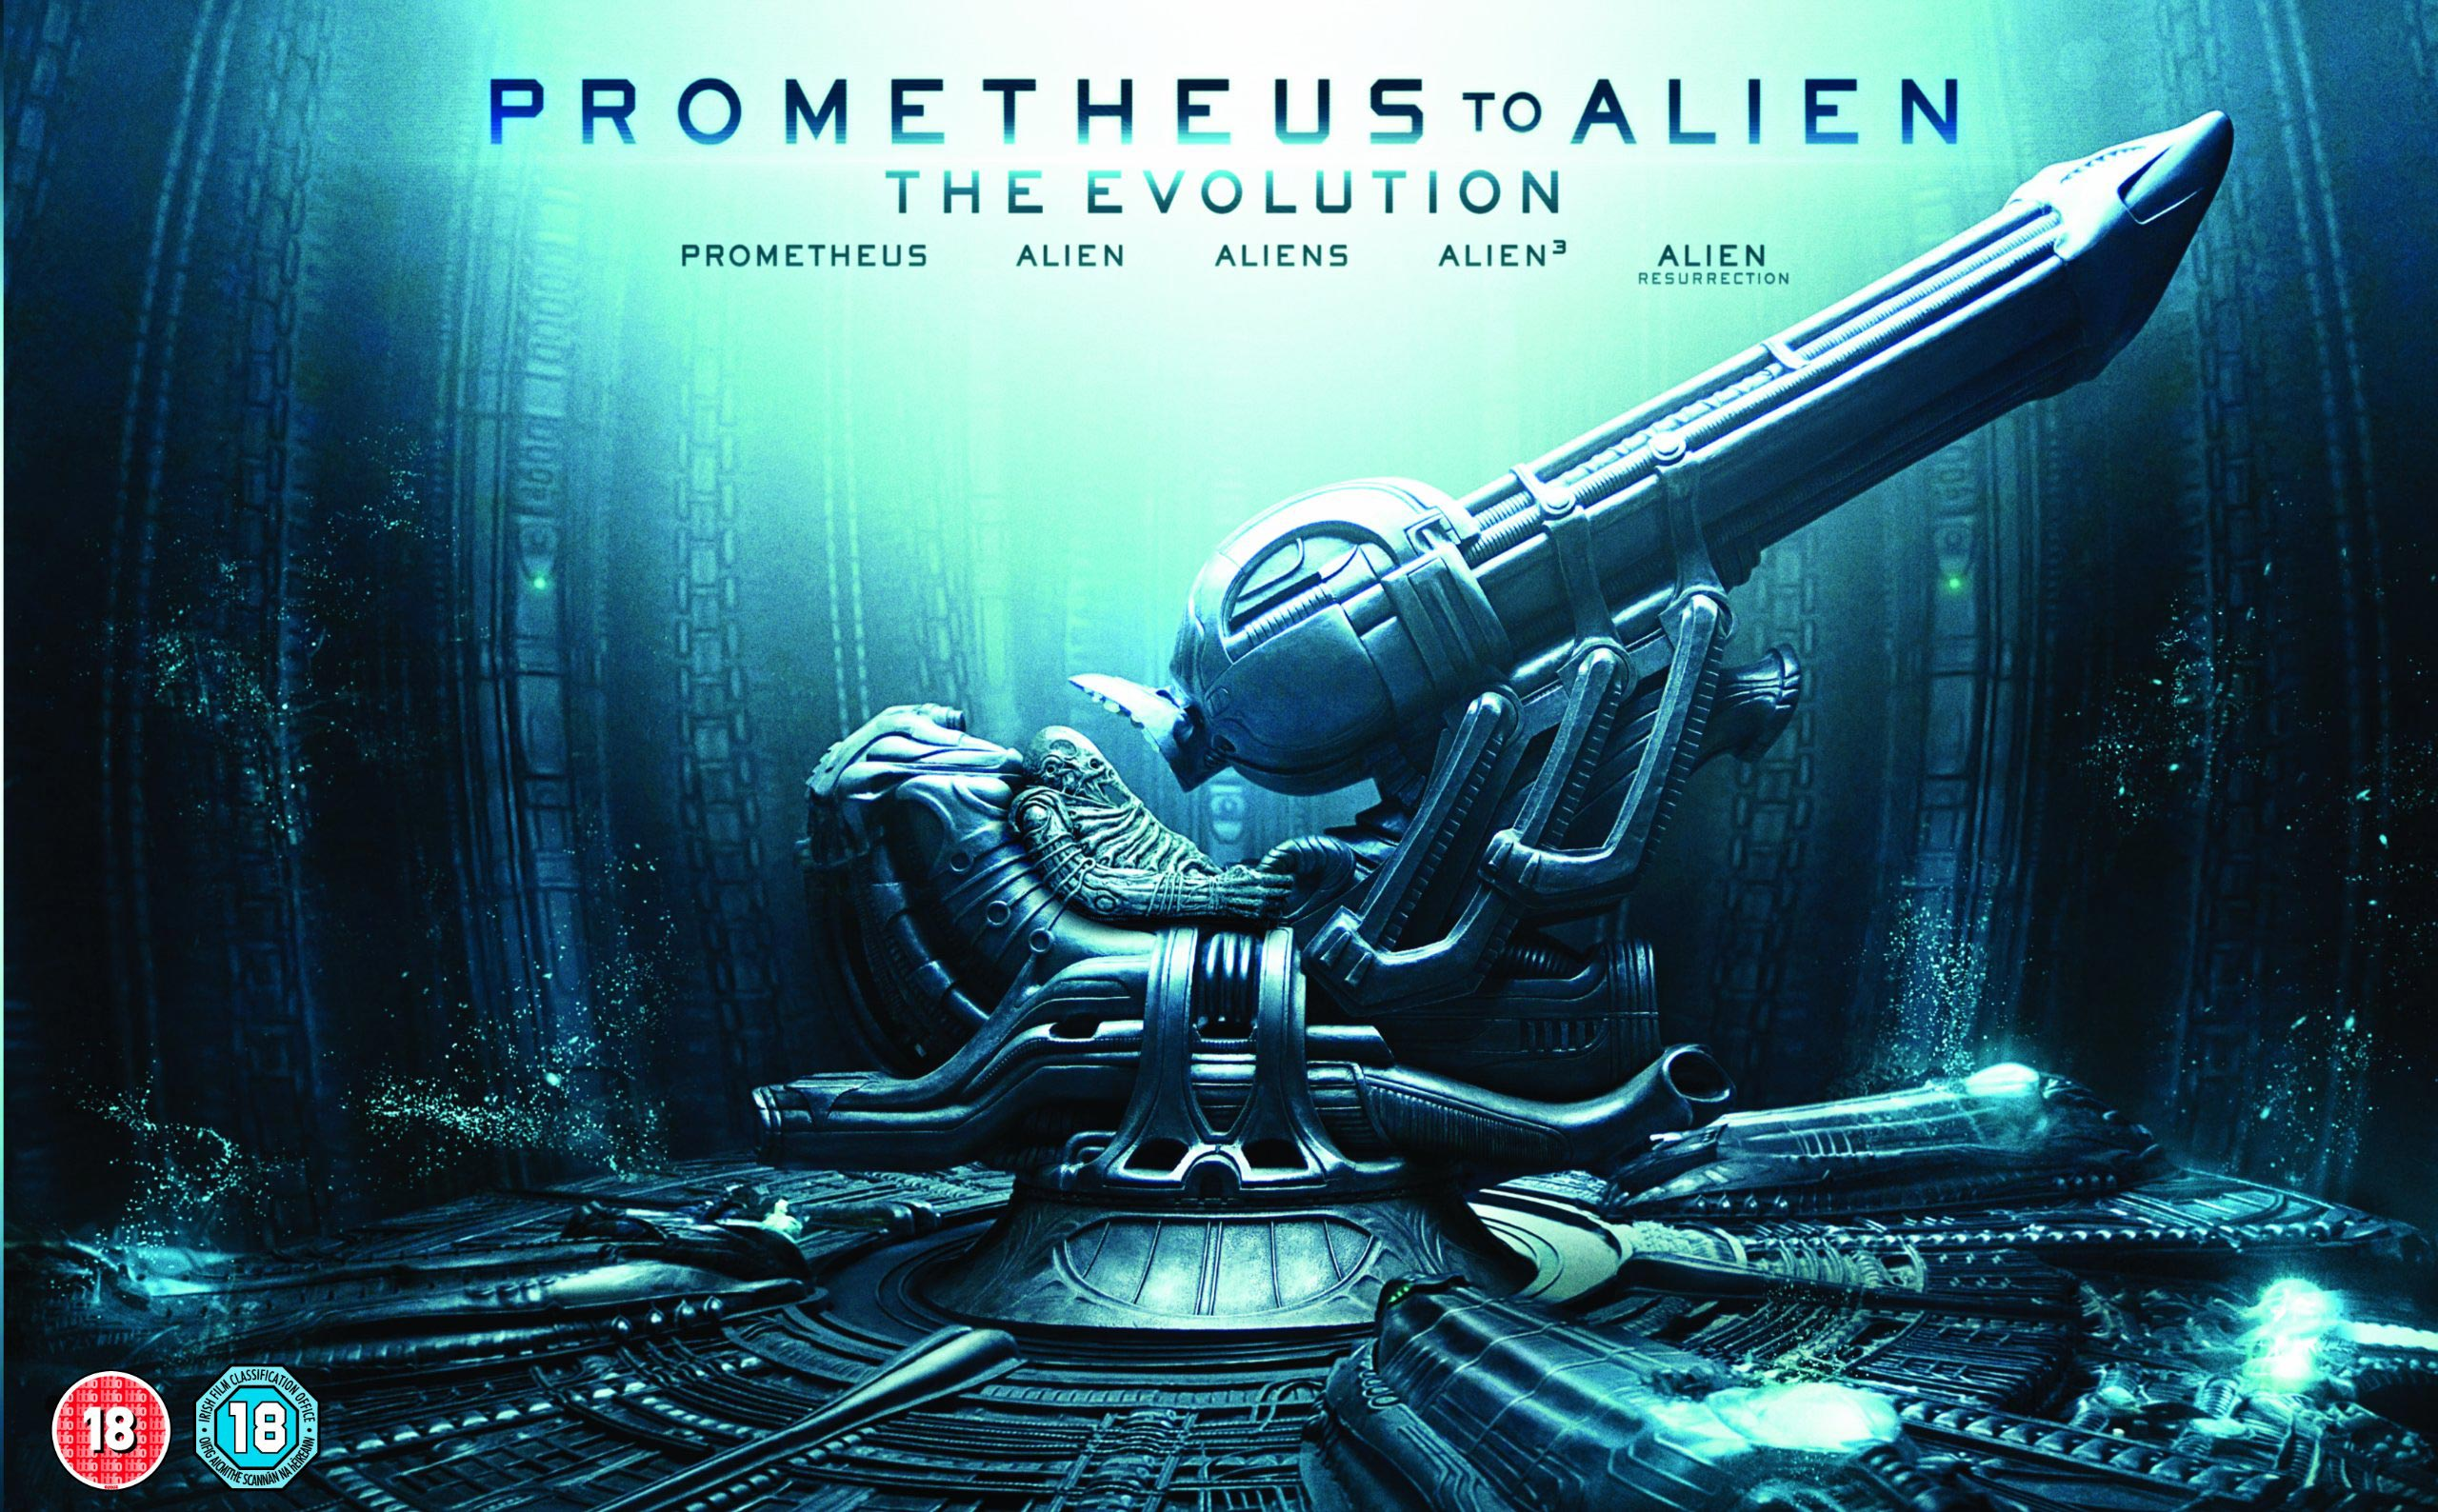 prometheus 2012 full movie in hindi dubbed download 720p